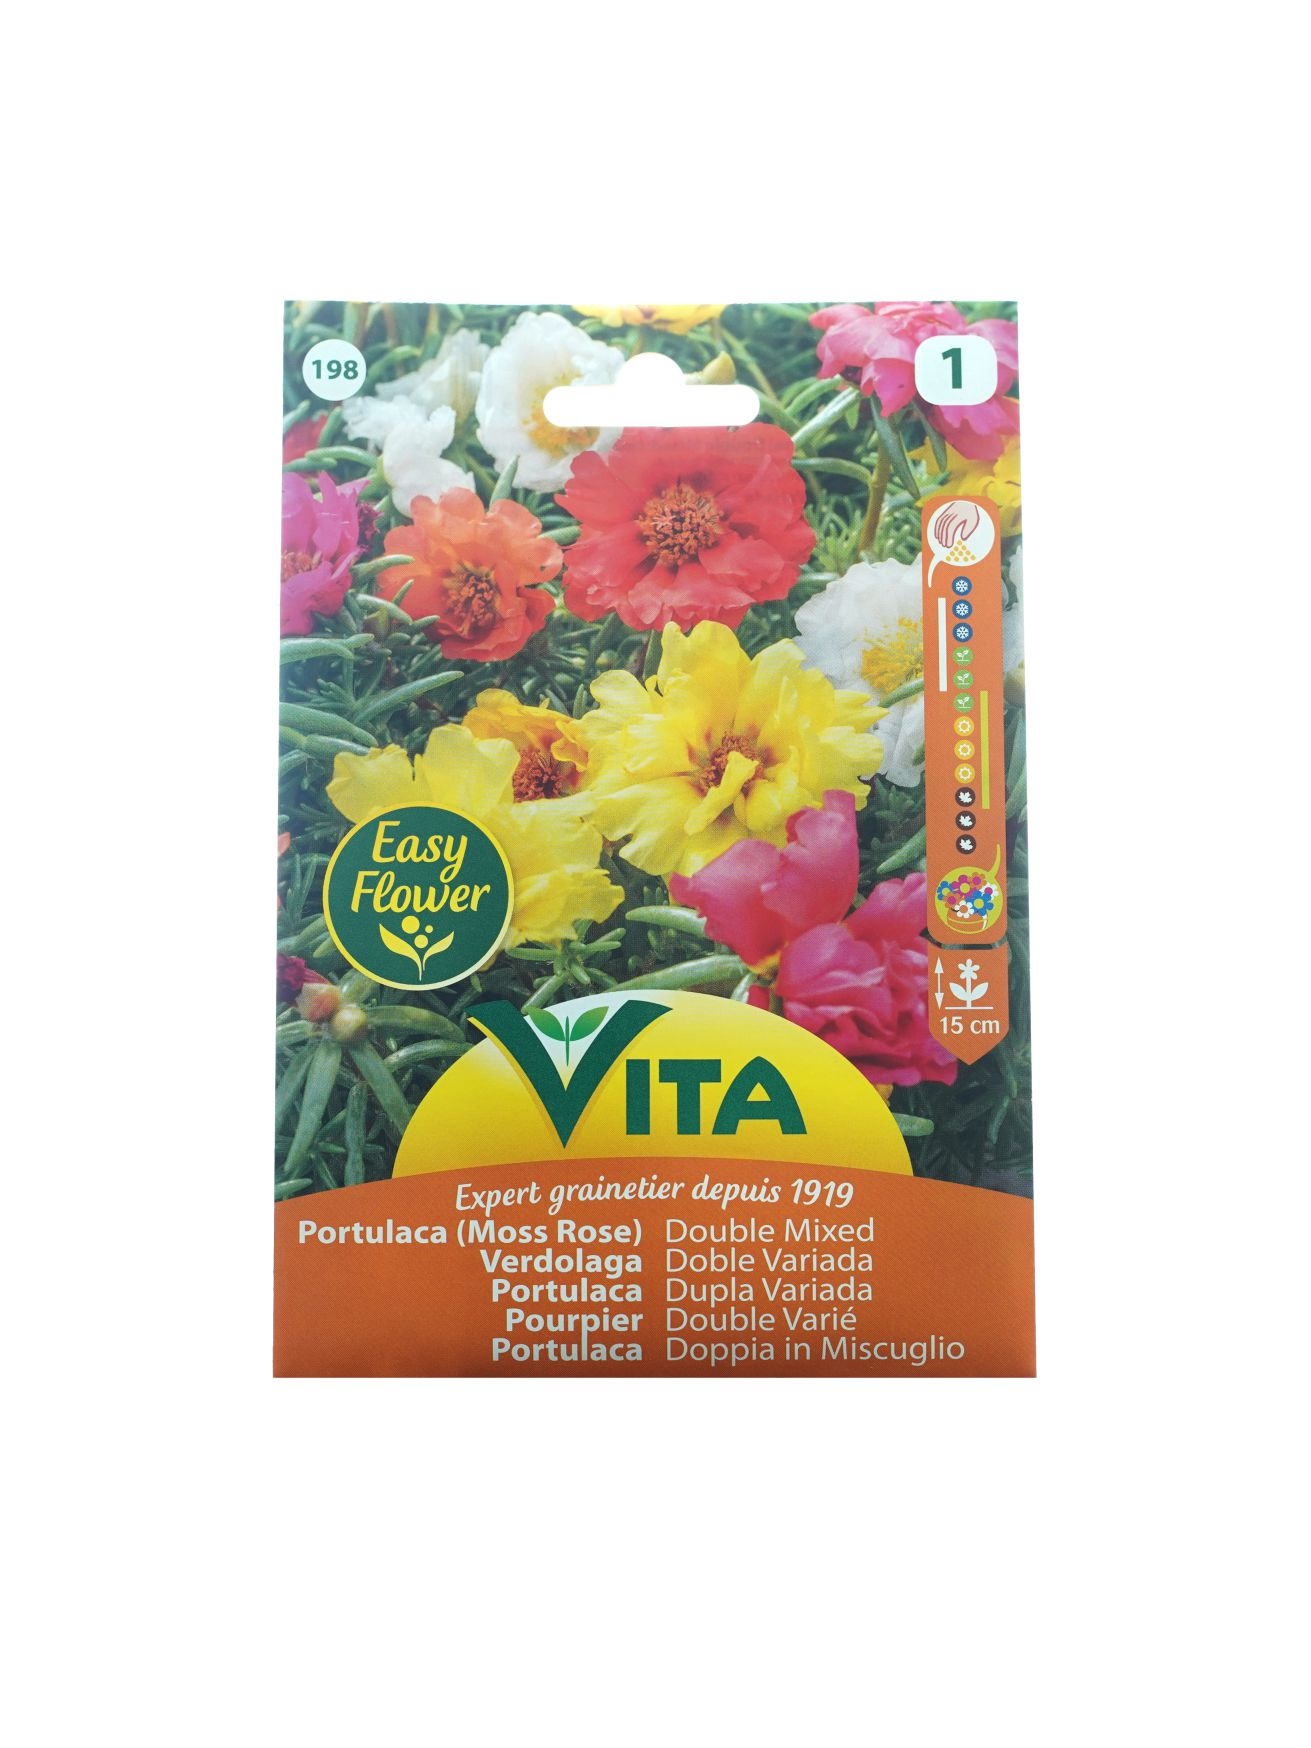 Vita Portulaca (Moss Rose) Double Mixed  Seeds Herbs